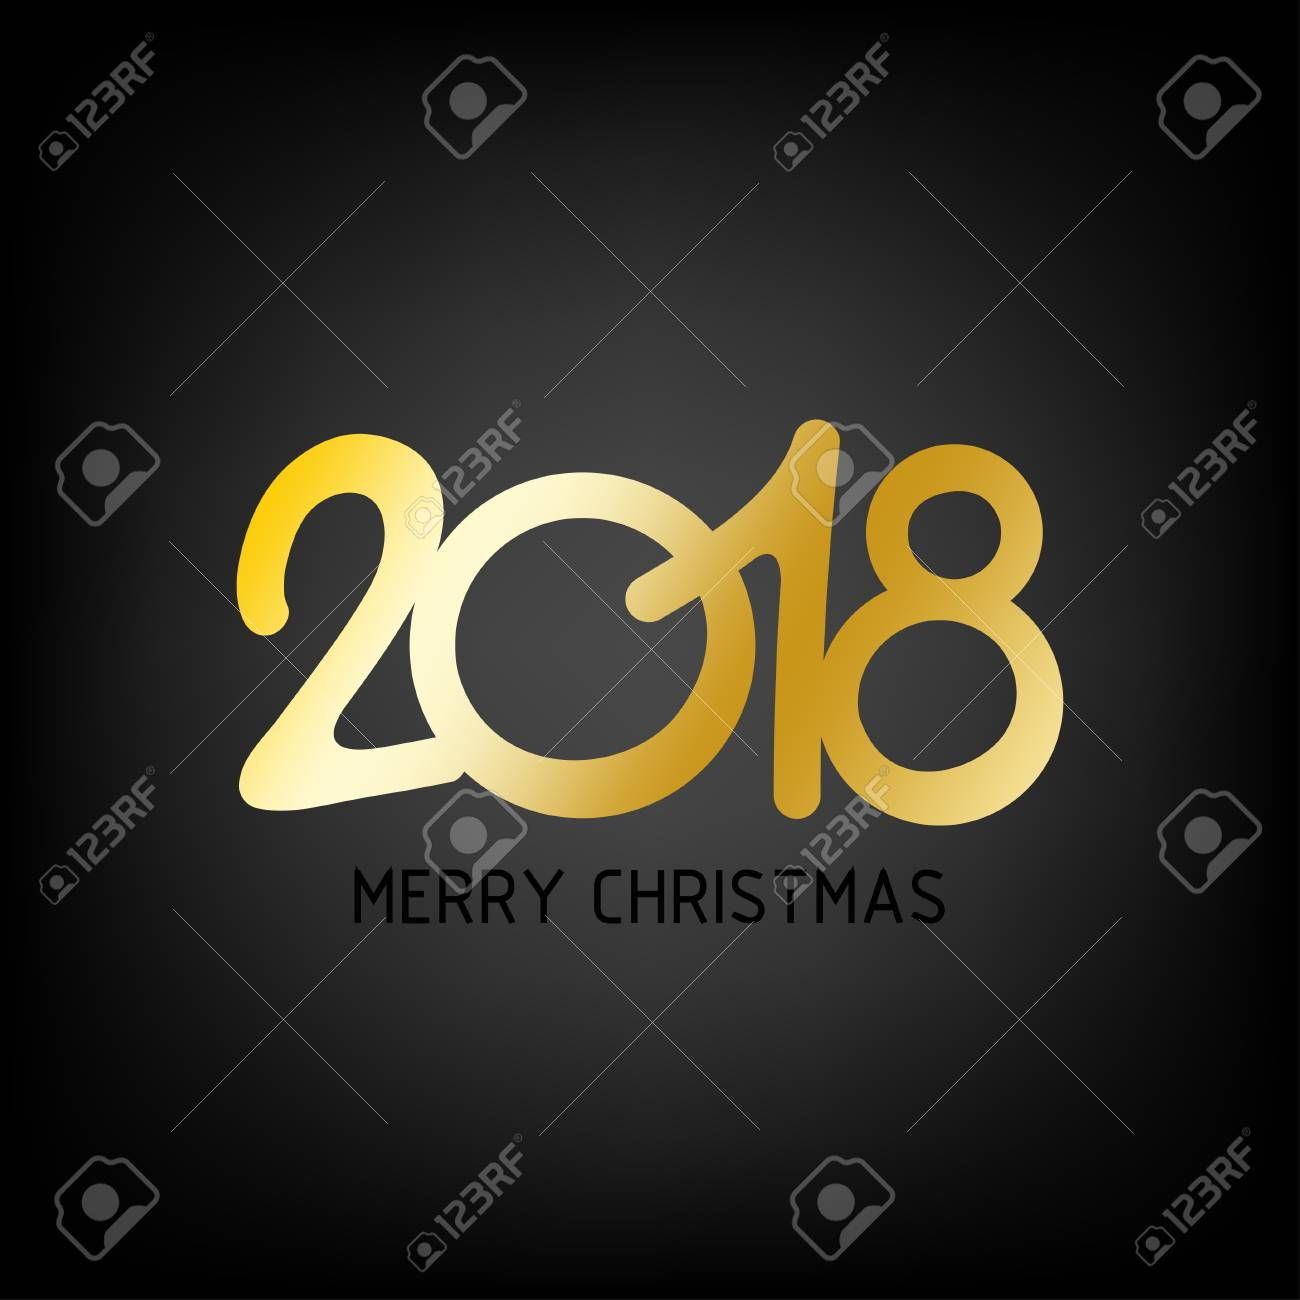 happy new year 2018 vector background new year and merry christmas 2018 theme stock